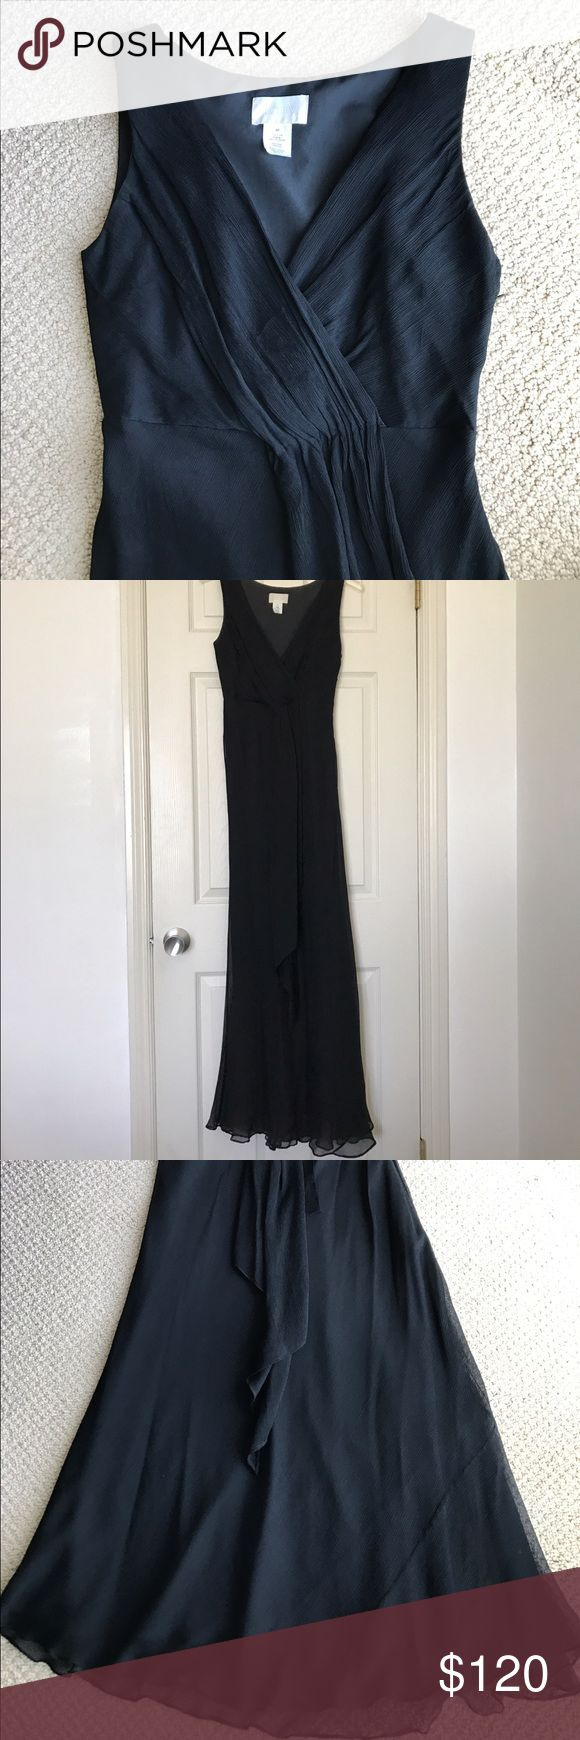 J.Crew Petite Formal Silk Gown J. Crew Petite Evie Long Dress in silk chiffon. Gorgeous, black formal gown perfect for a wedding or other special occasion. This is a really beautiful dress, but I have to re-posh because it was a couple inches too long for me. Great condition except for one very small snag near the bottom hem, as shown in the 2nd to last photo. Just trying to get my money back plus the cost of dry cleaning. J. Crew Dresses